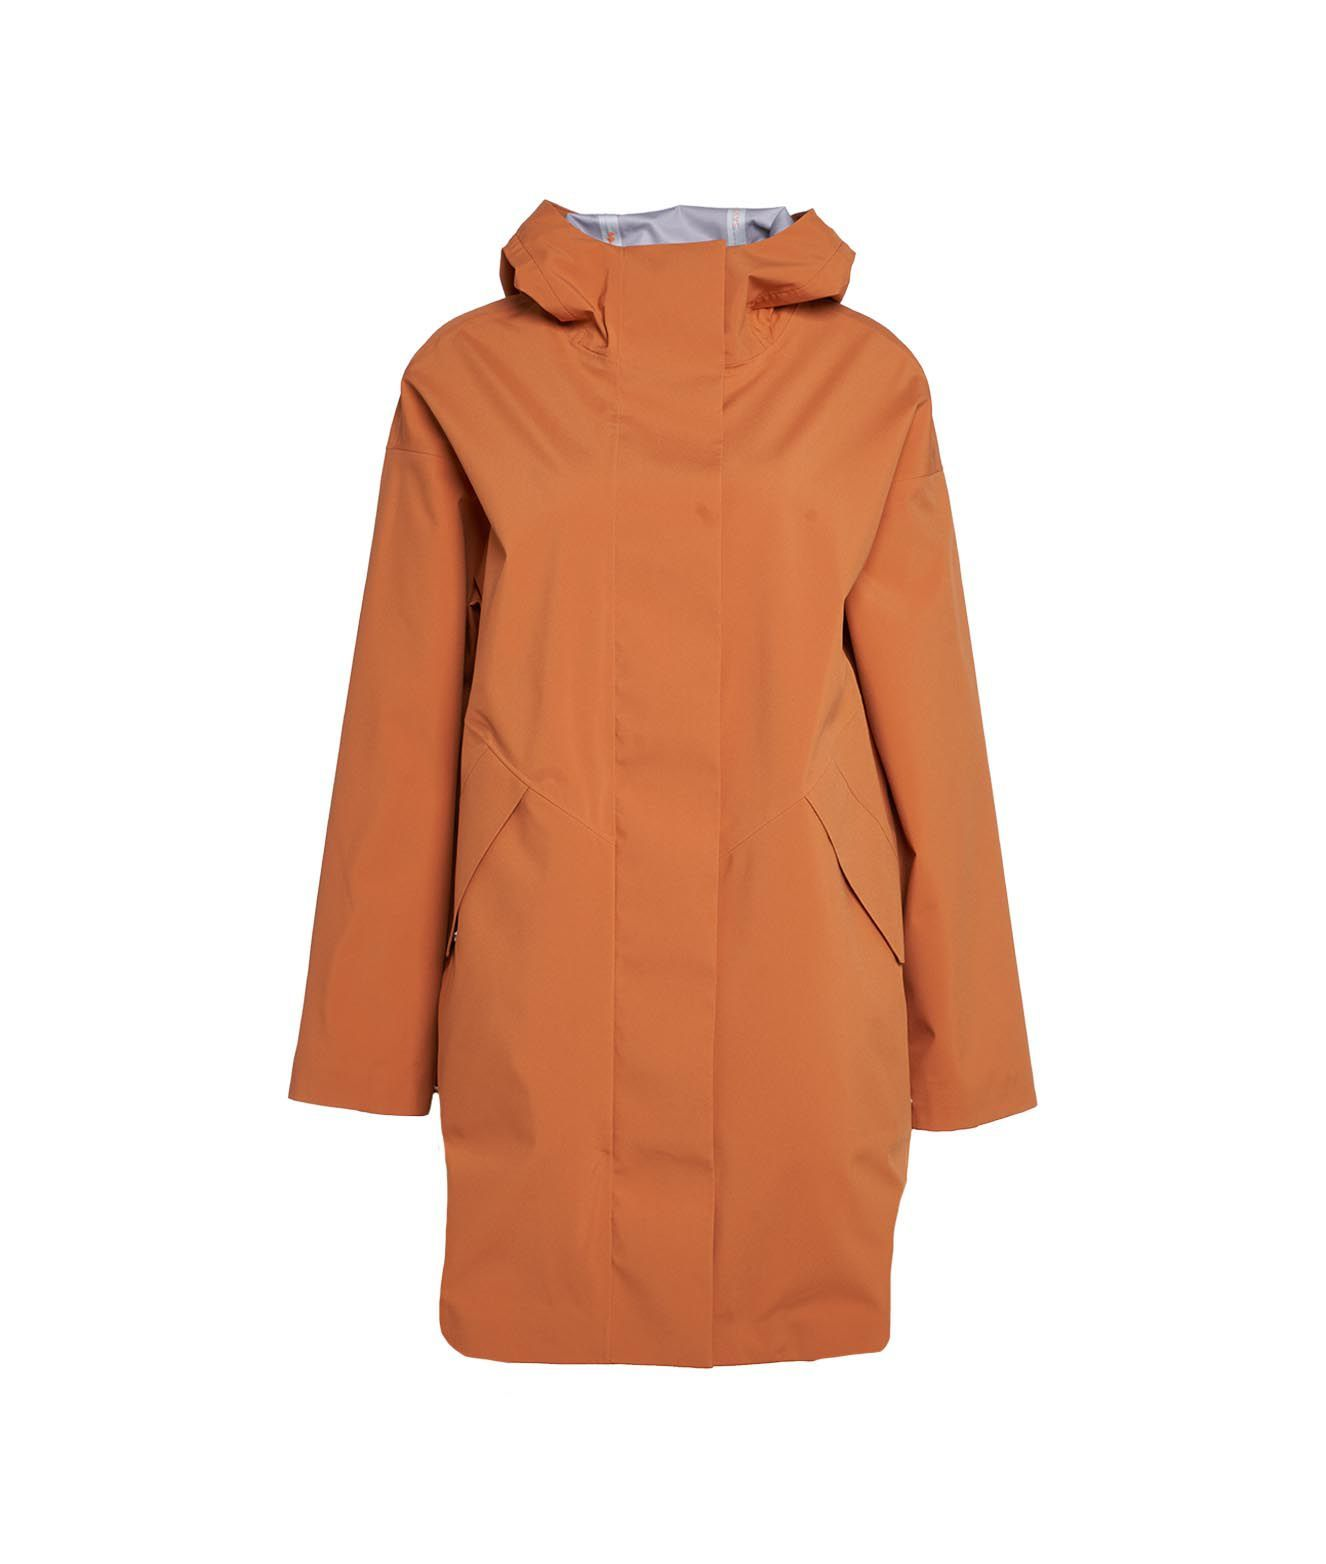 Save The Duck SAVE THE DUCK WOMEN'S D40108GRIN1270004 ORANGE OTHER MATERIALS COAT